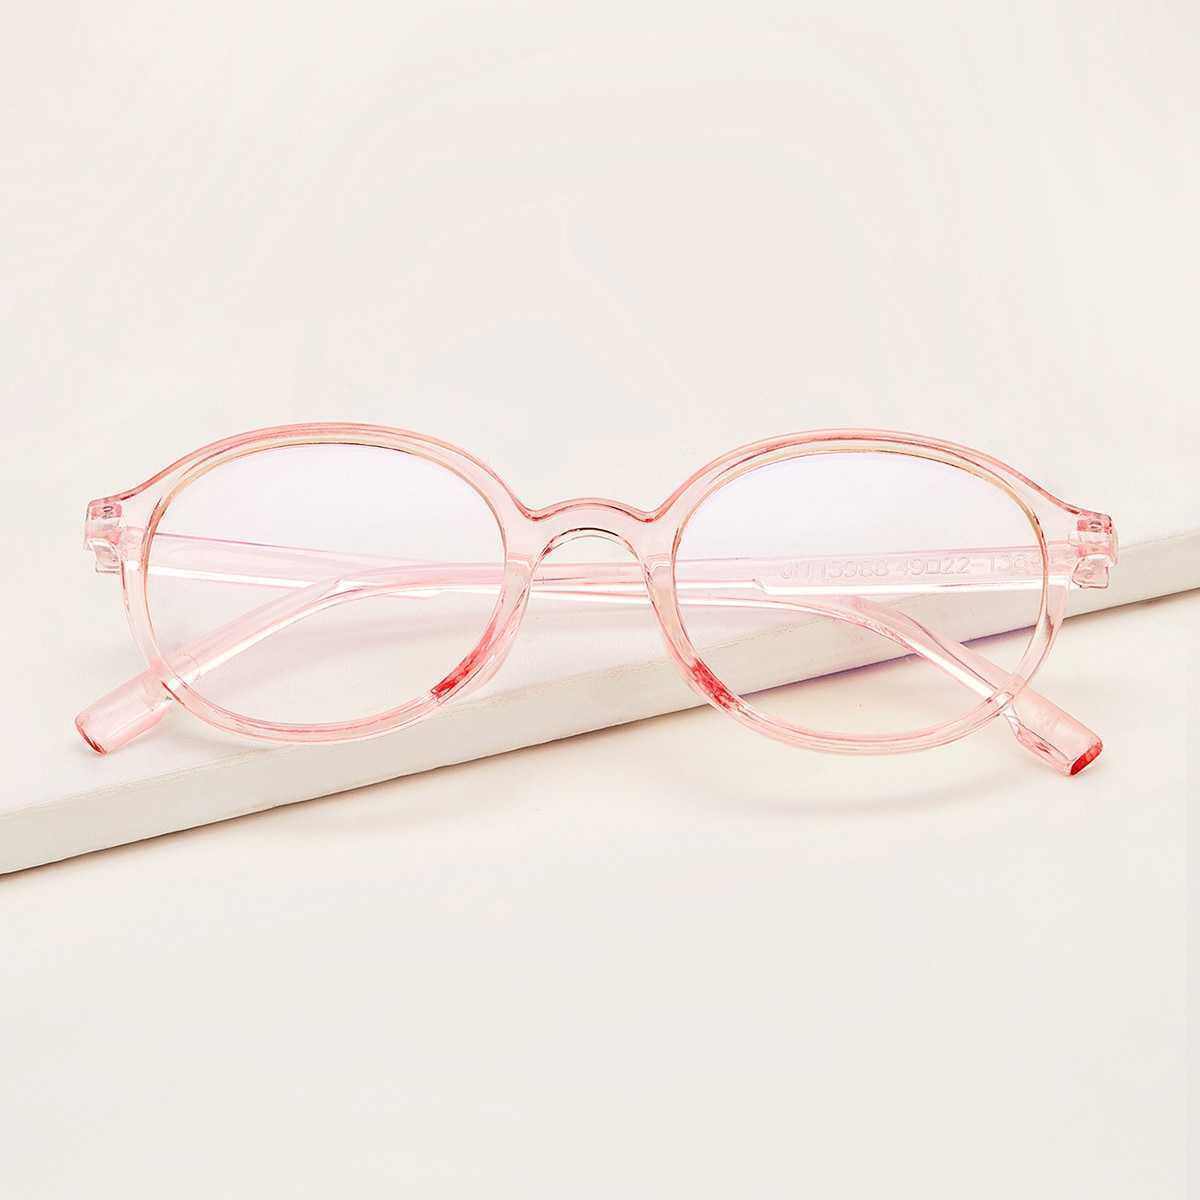 Transparent Frame Glasses in Pink by ROMWE on GOOFASH